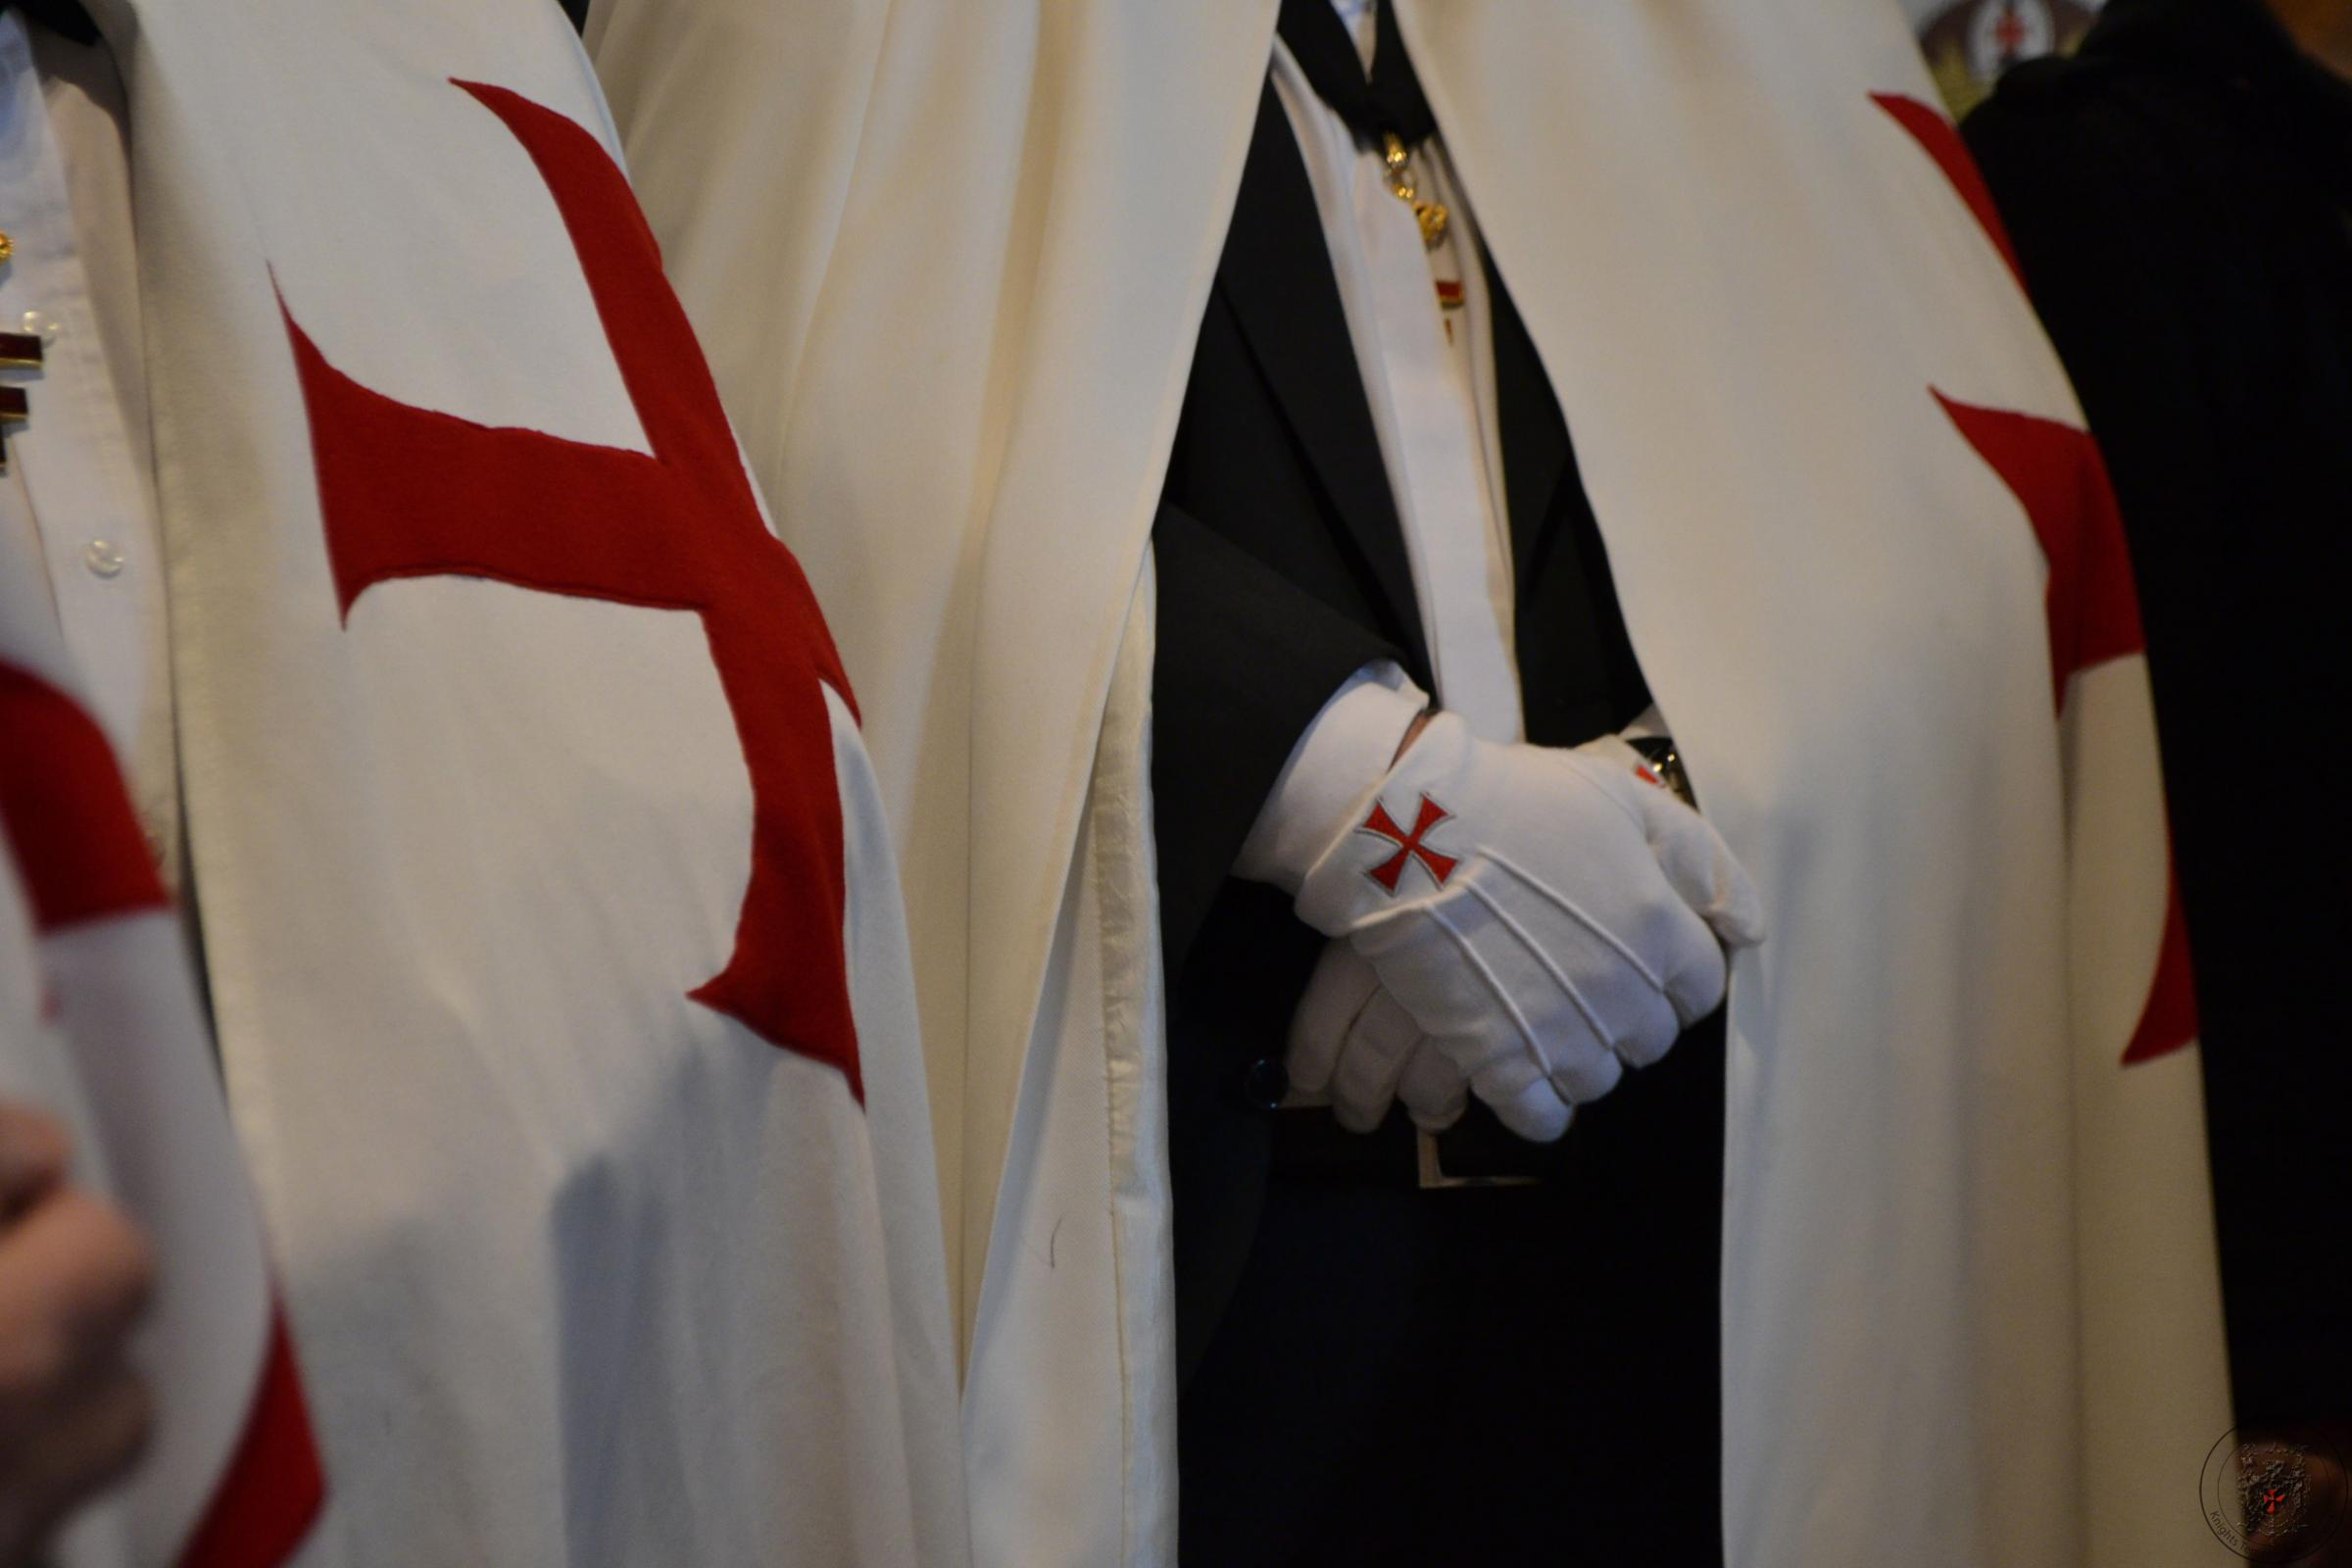 The Real Templars - Separating Fact from Fiction